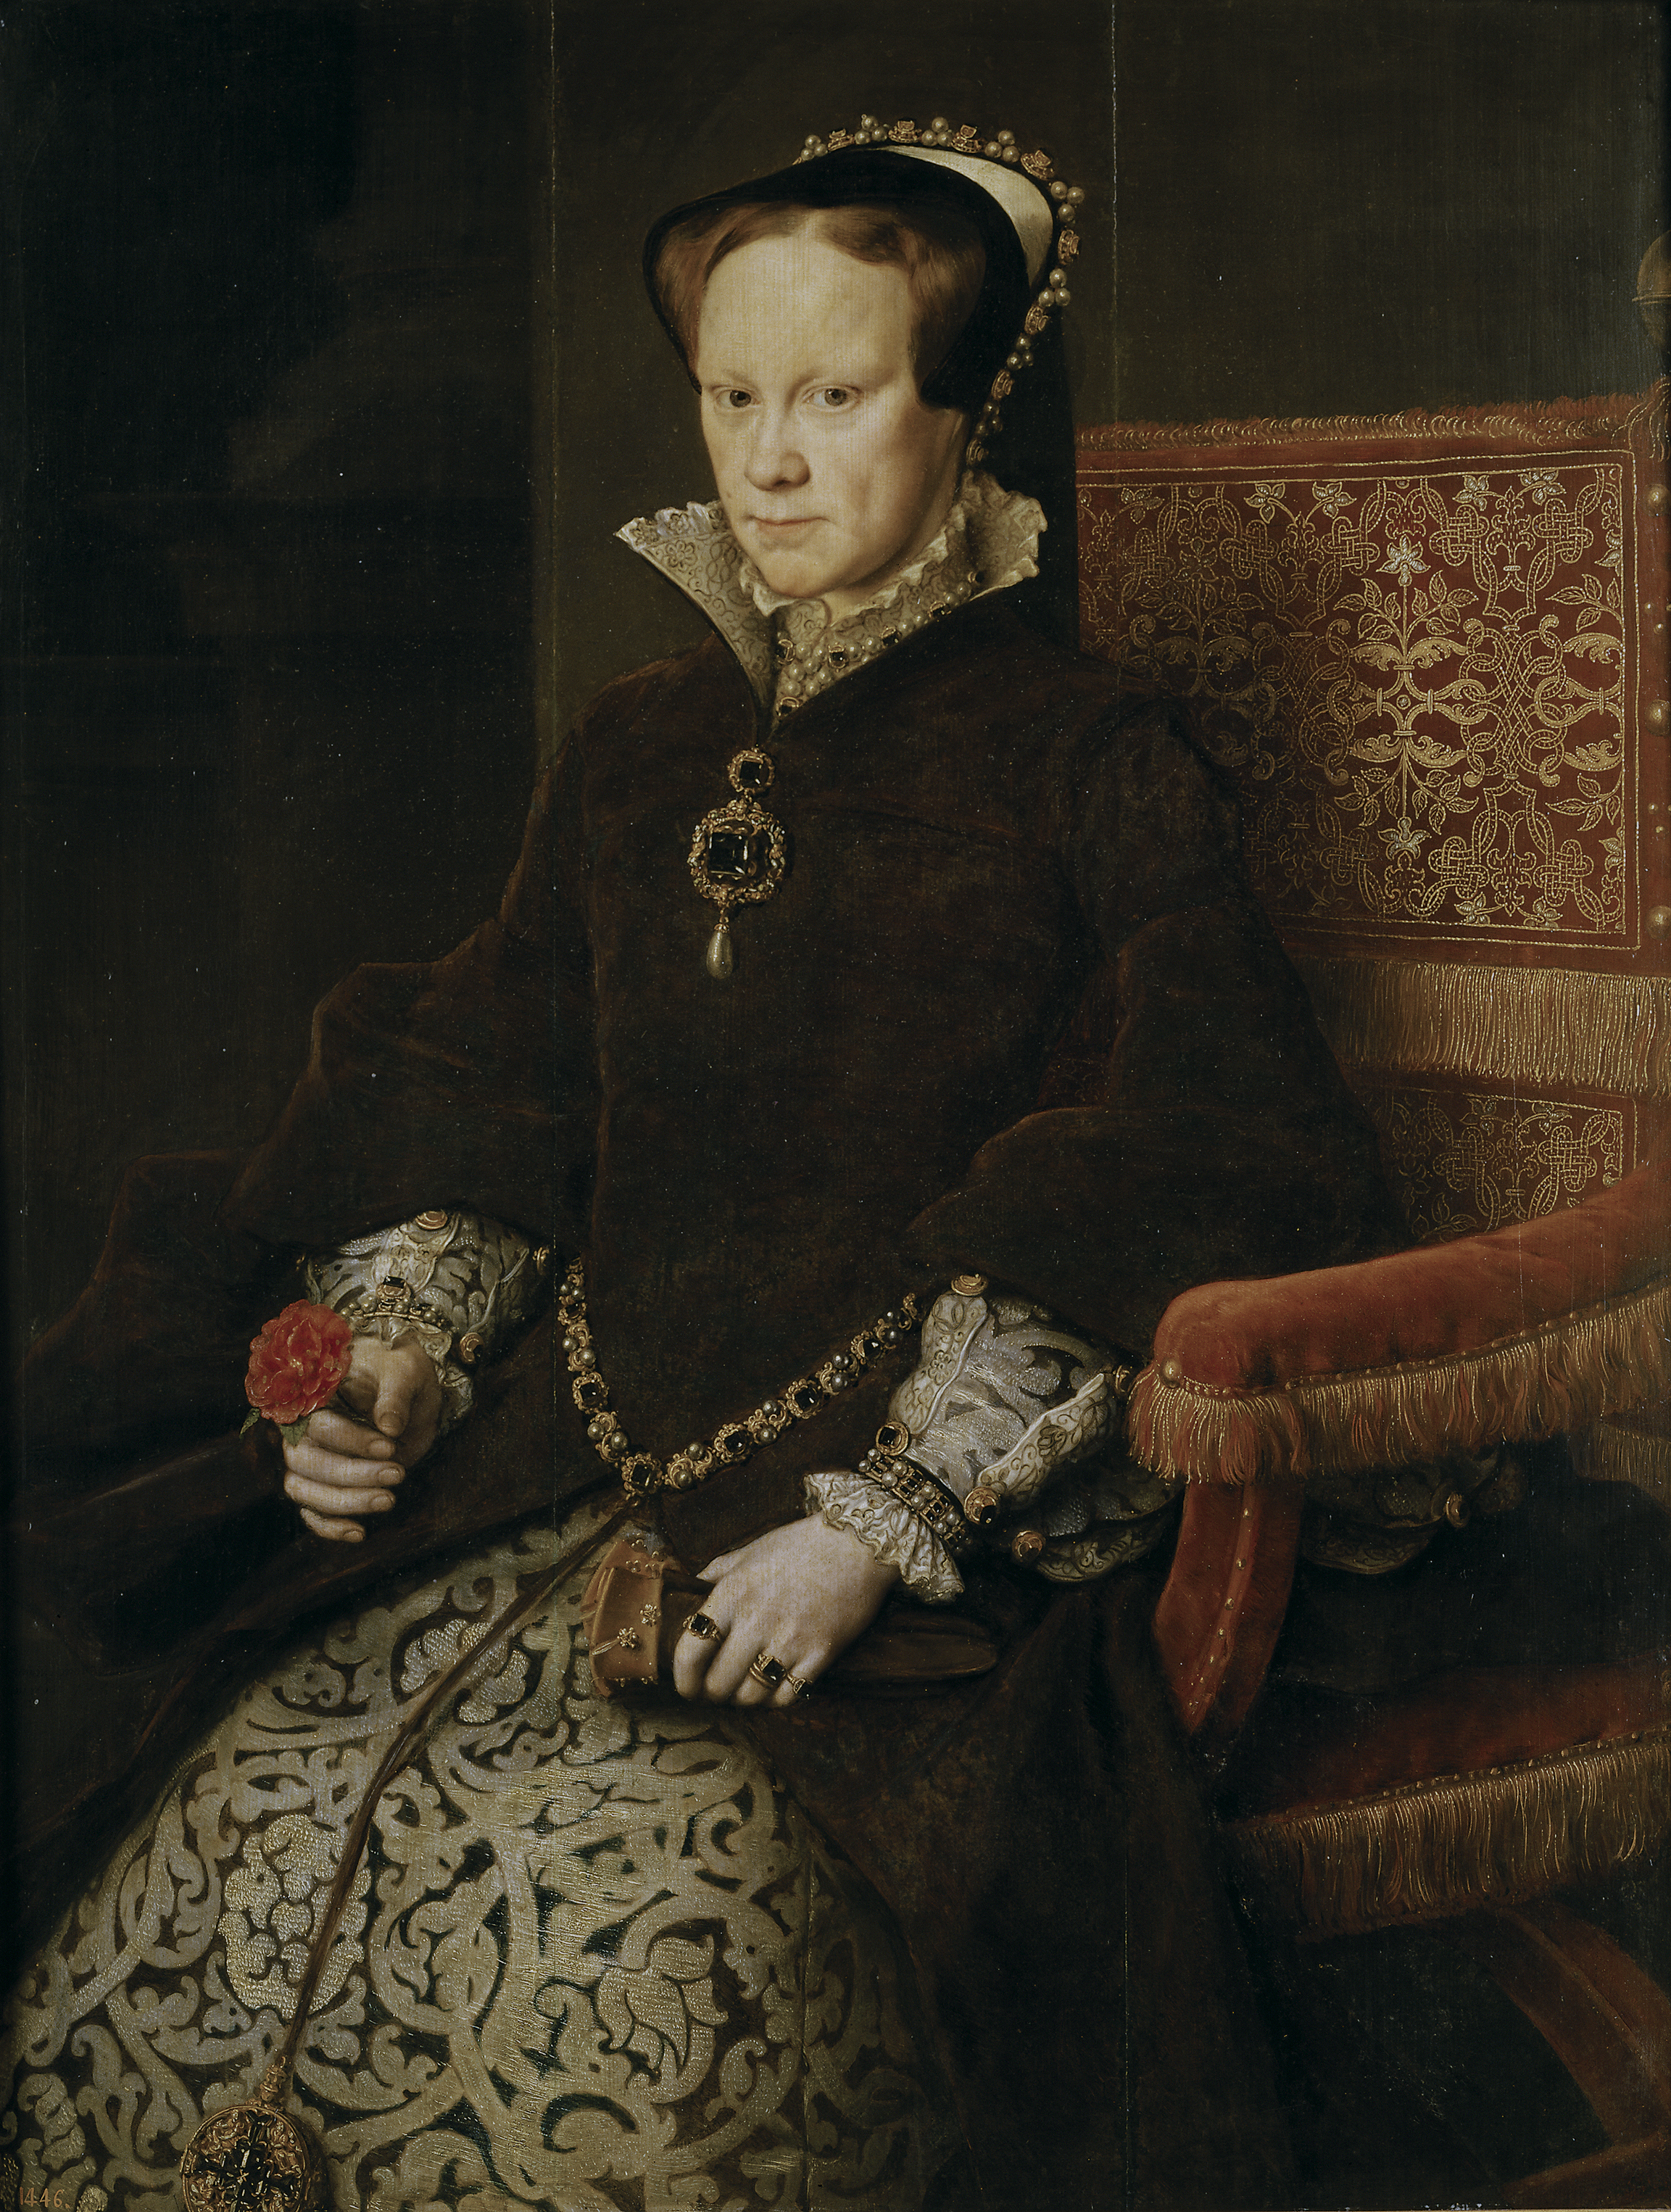 Mary I of England - Wikipedia